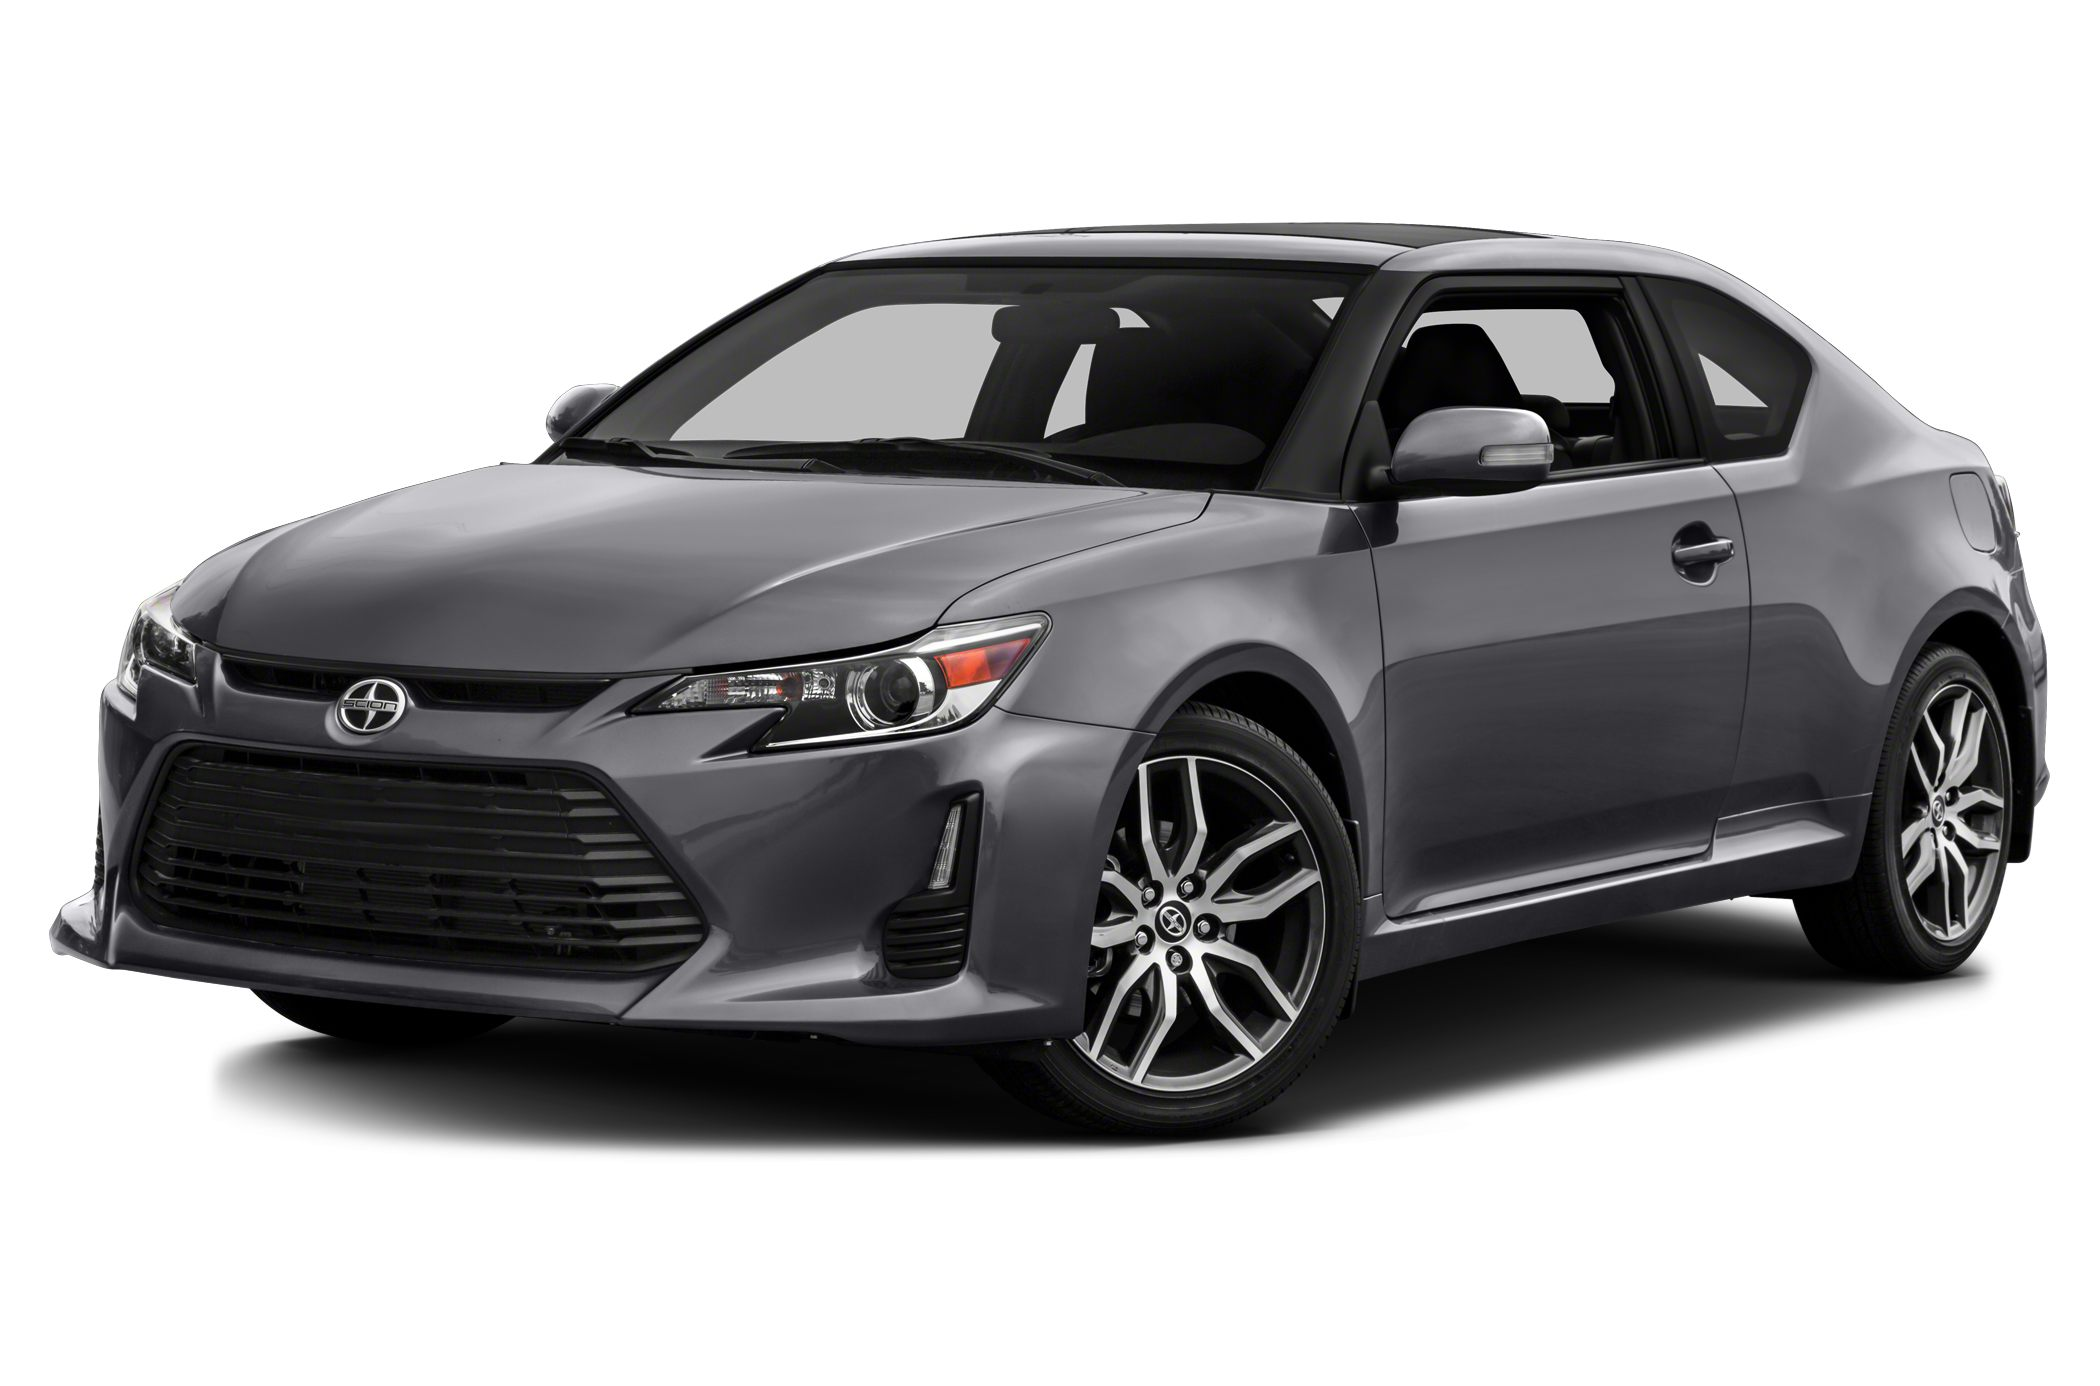 Image result for Scion tC